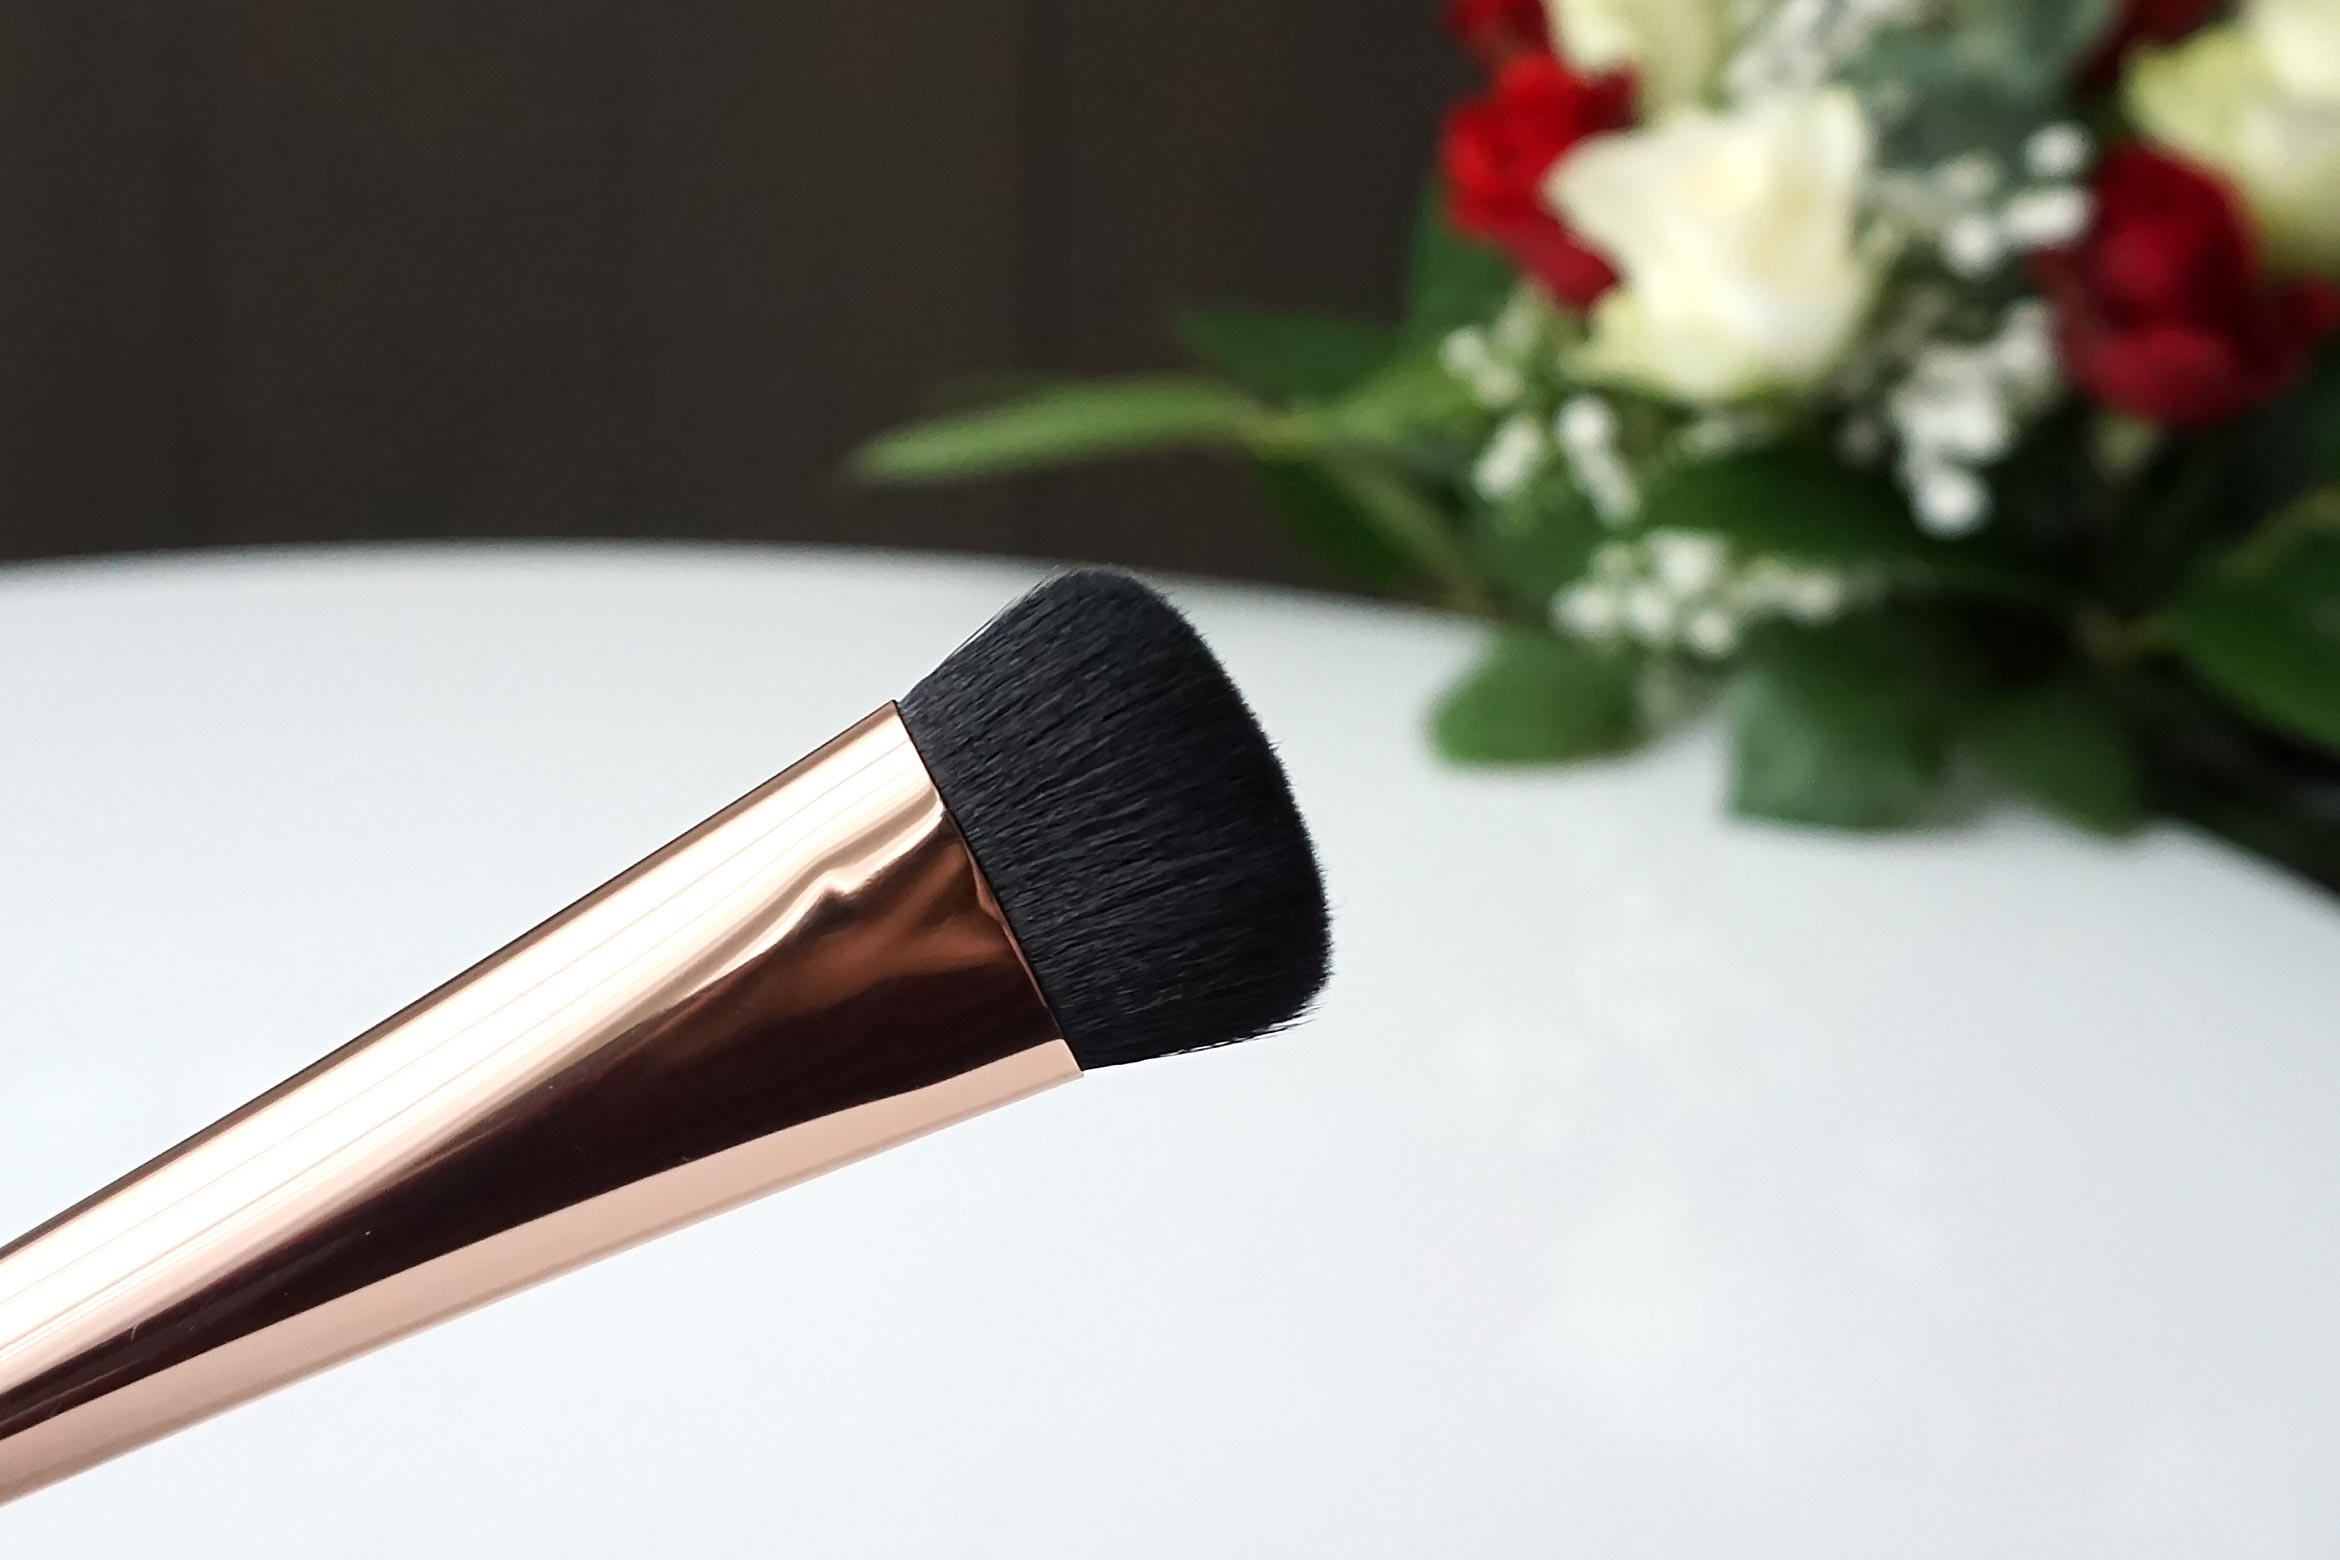 essence-glow-my-mind-highlighter-brush-review-1